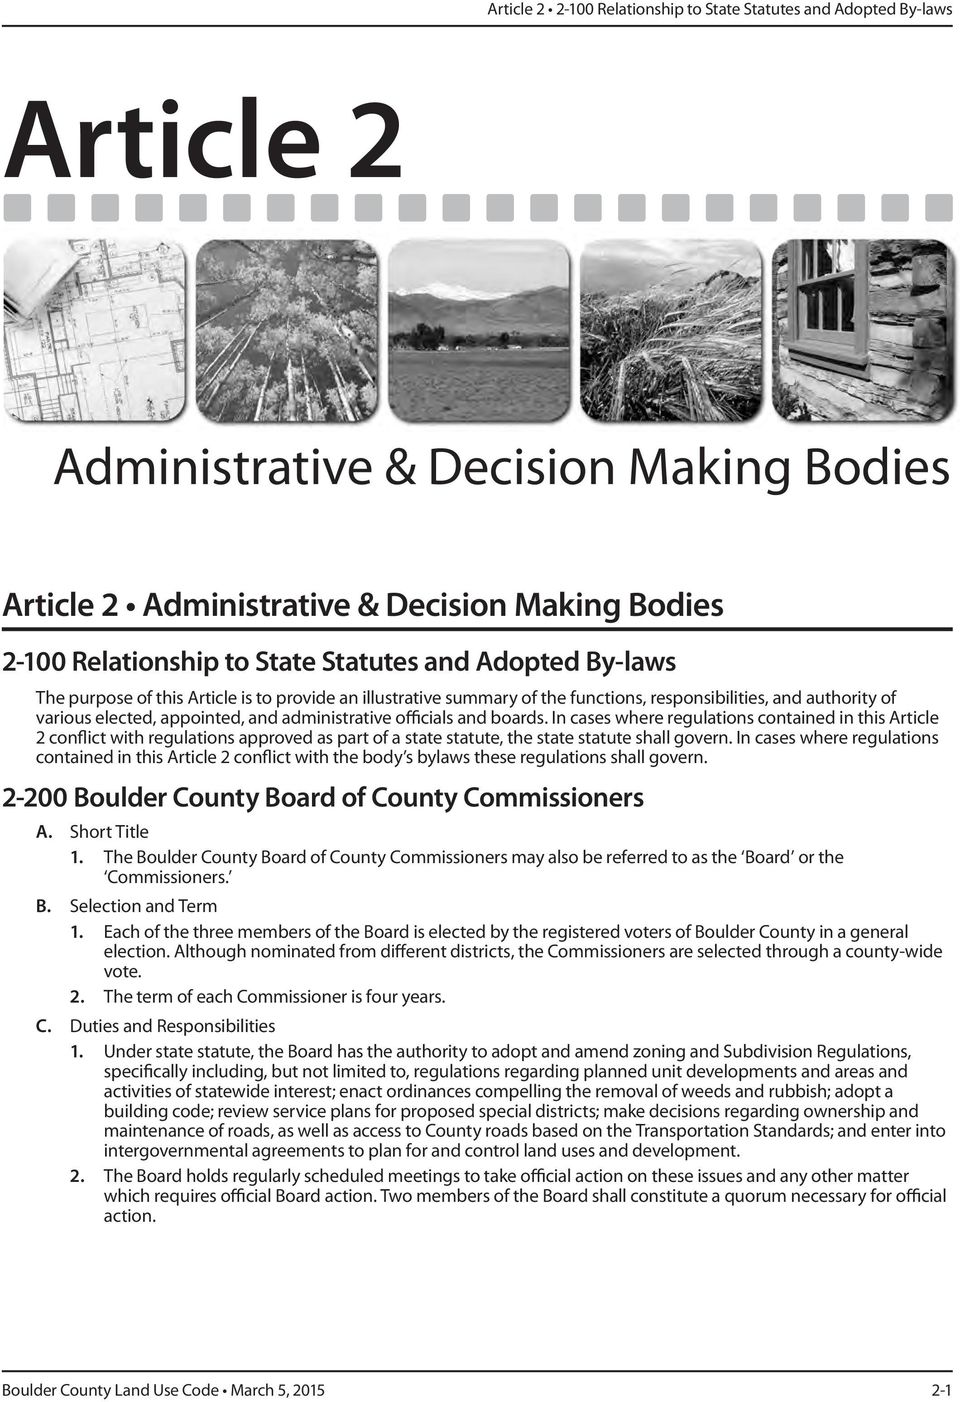 officials and boards. In cases where regulations contained in this Article 2 conflict with regulations approved as part of a state statute, the state statute shall govern.